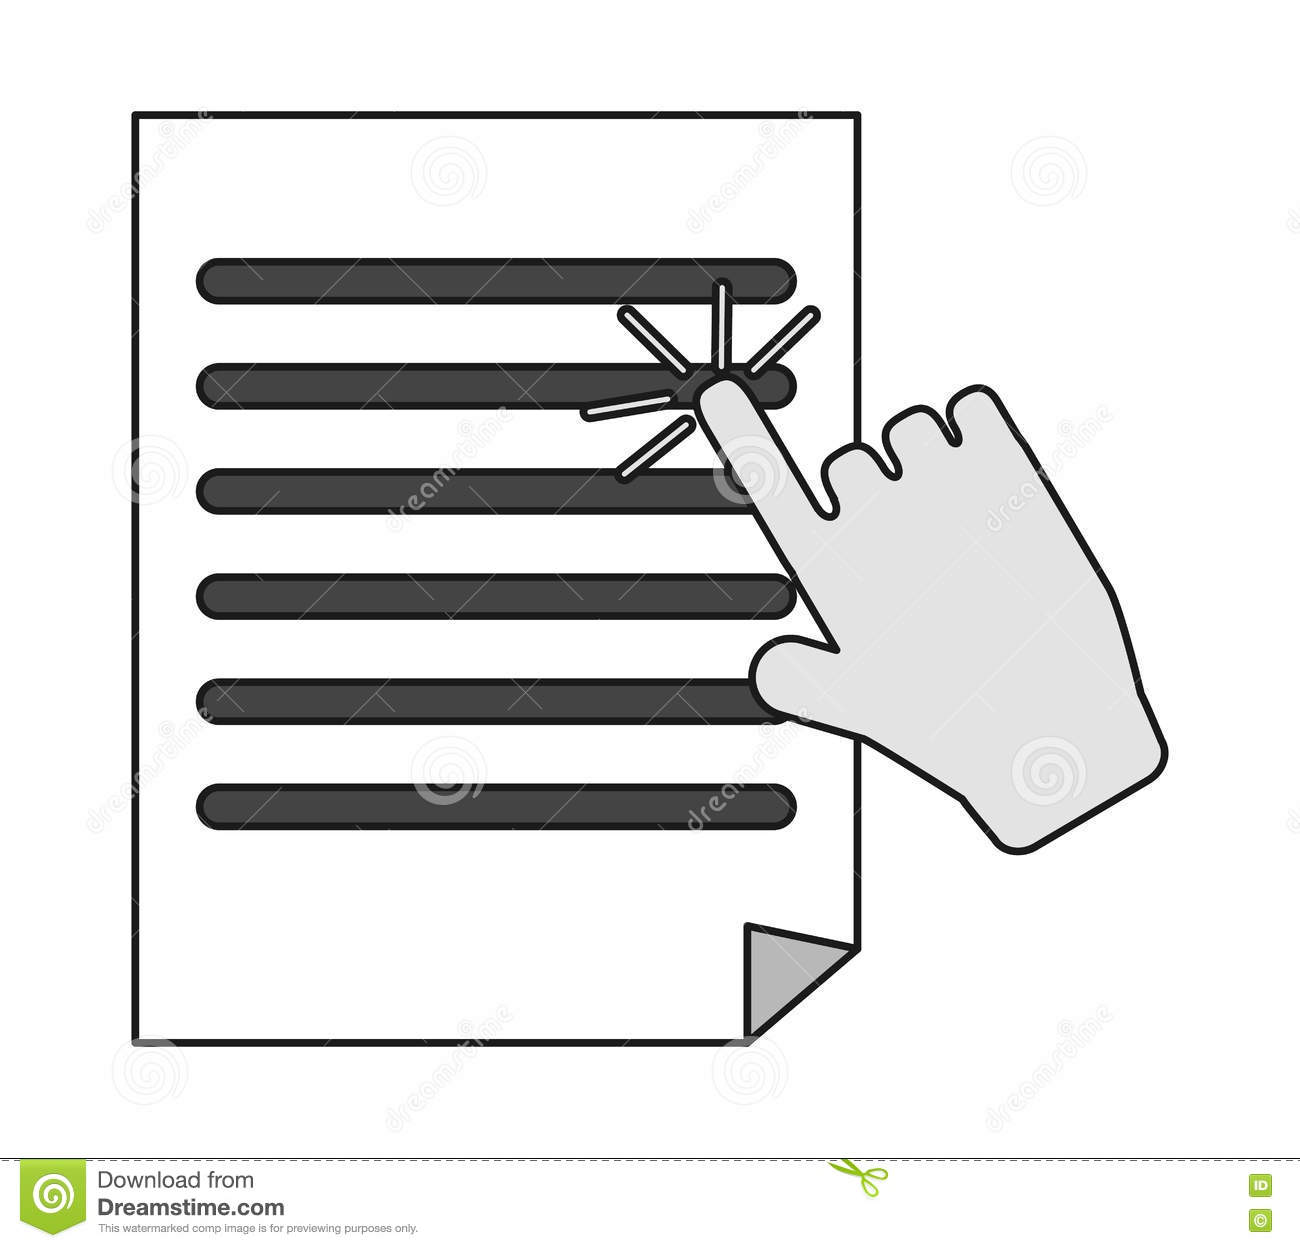 poor document design essay Has anyone an example of where poor control of documents has  due to a design/document control  examples of major problems caused by poor document control:.